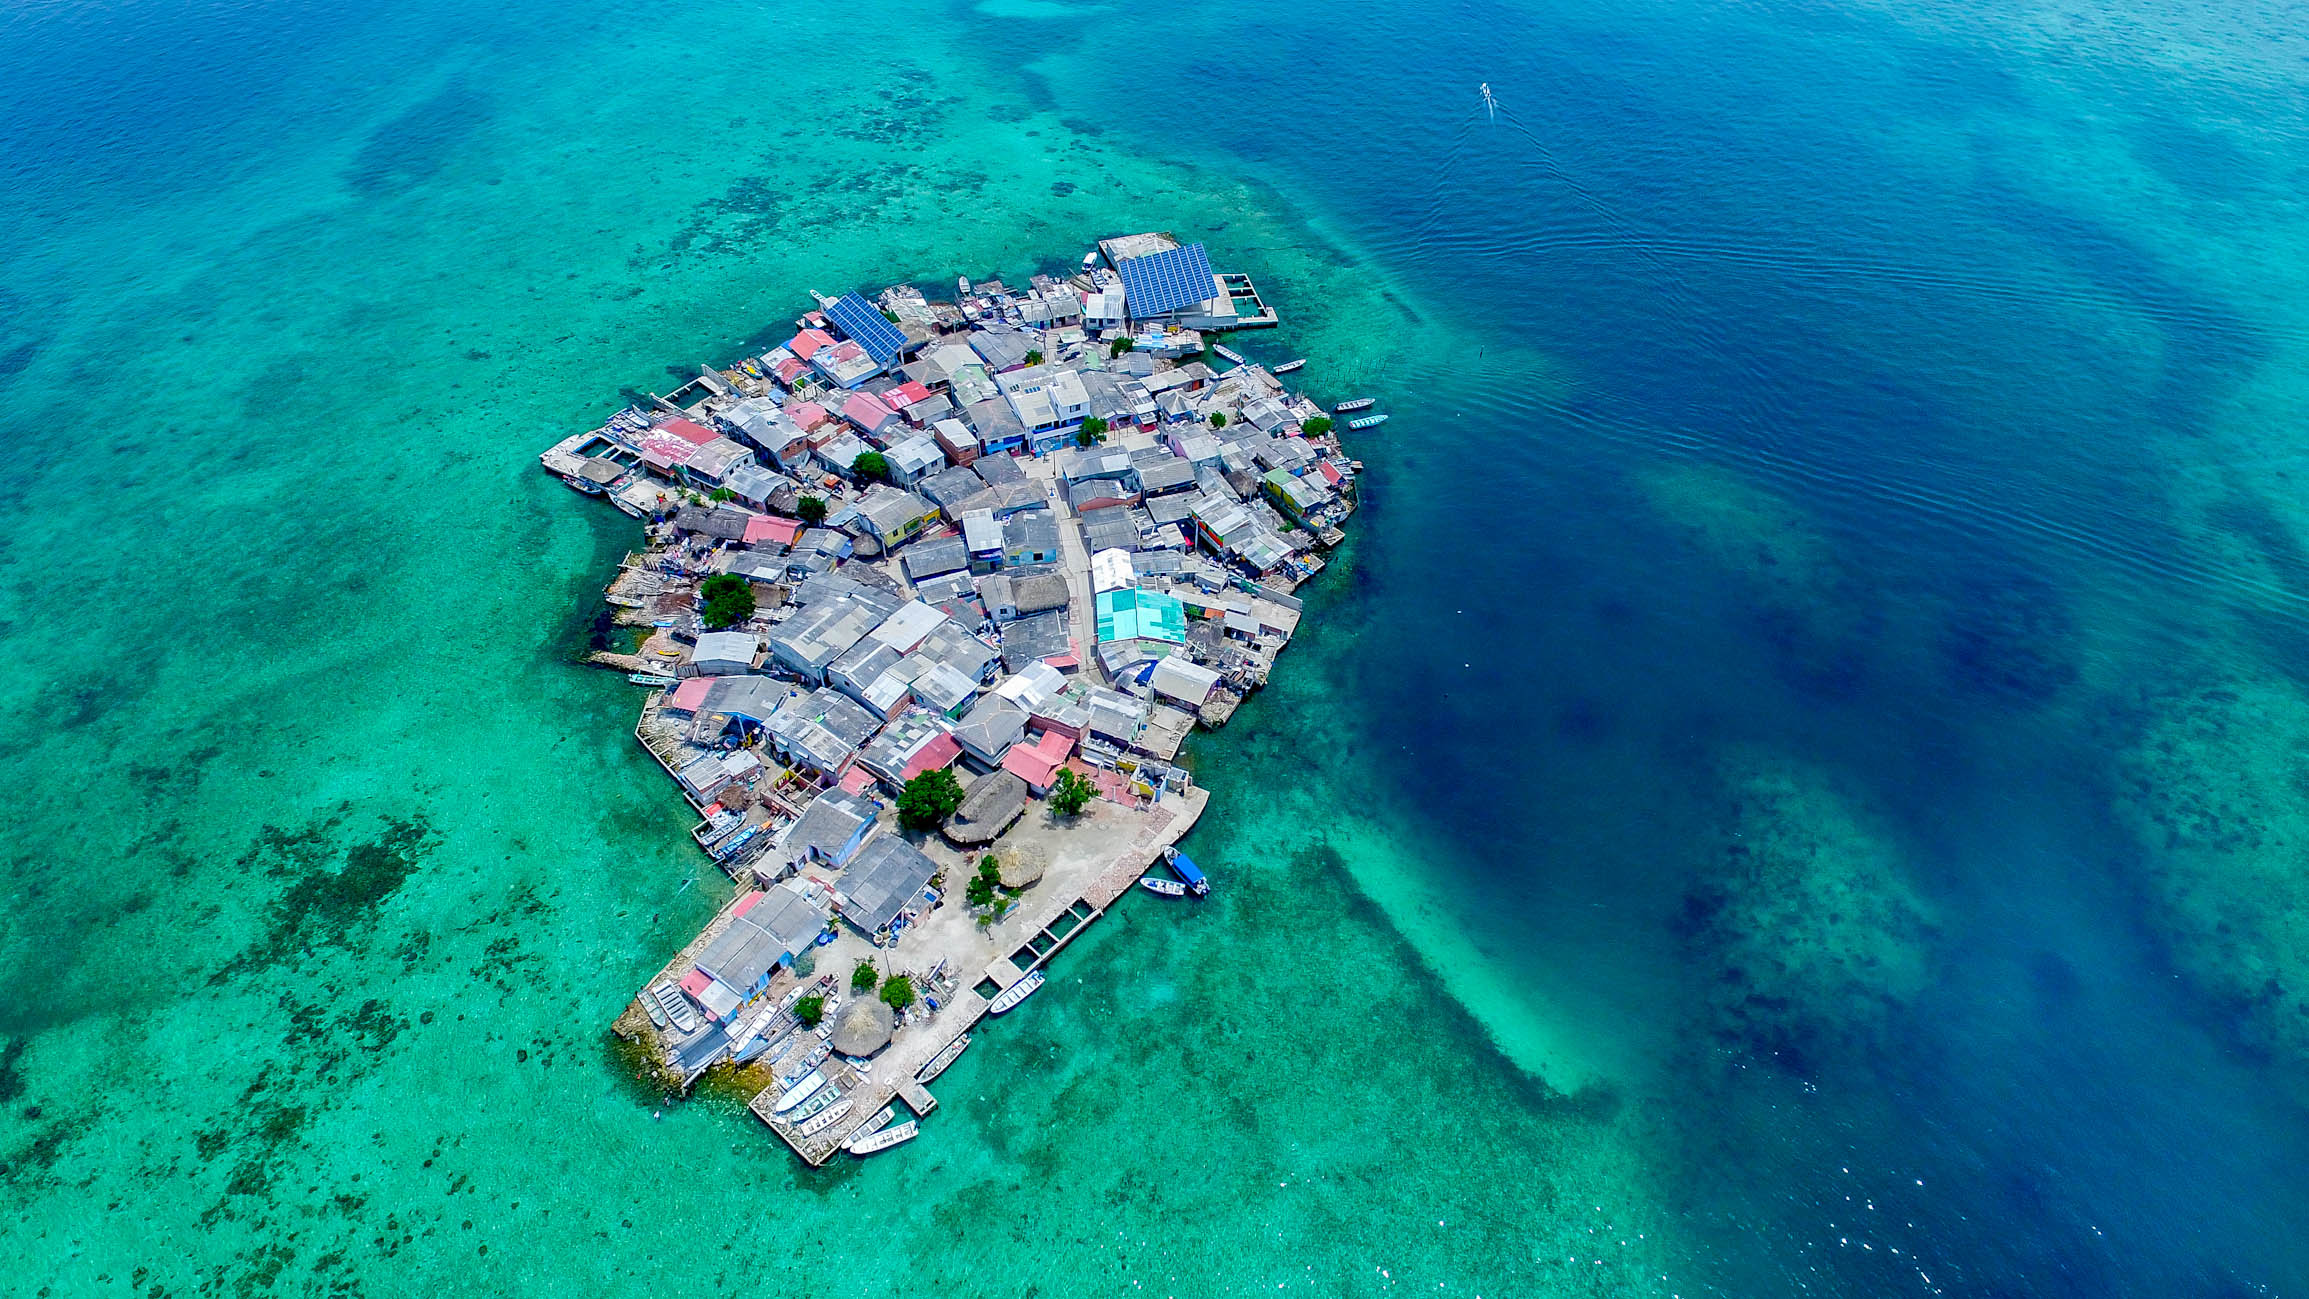 Santa Cruz del Islote – Most Densely Populated Island in the World